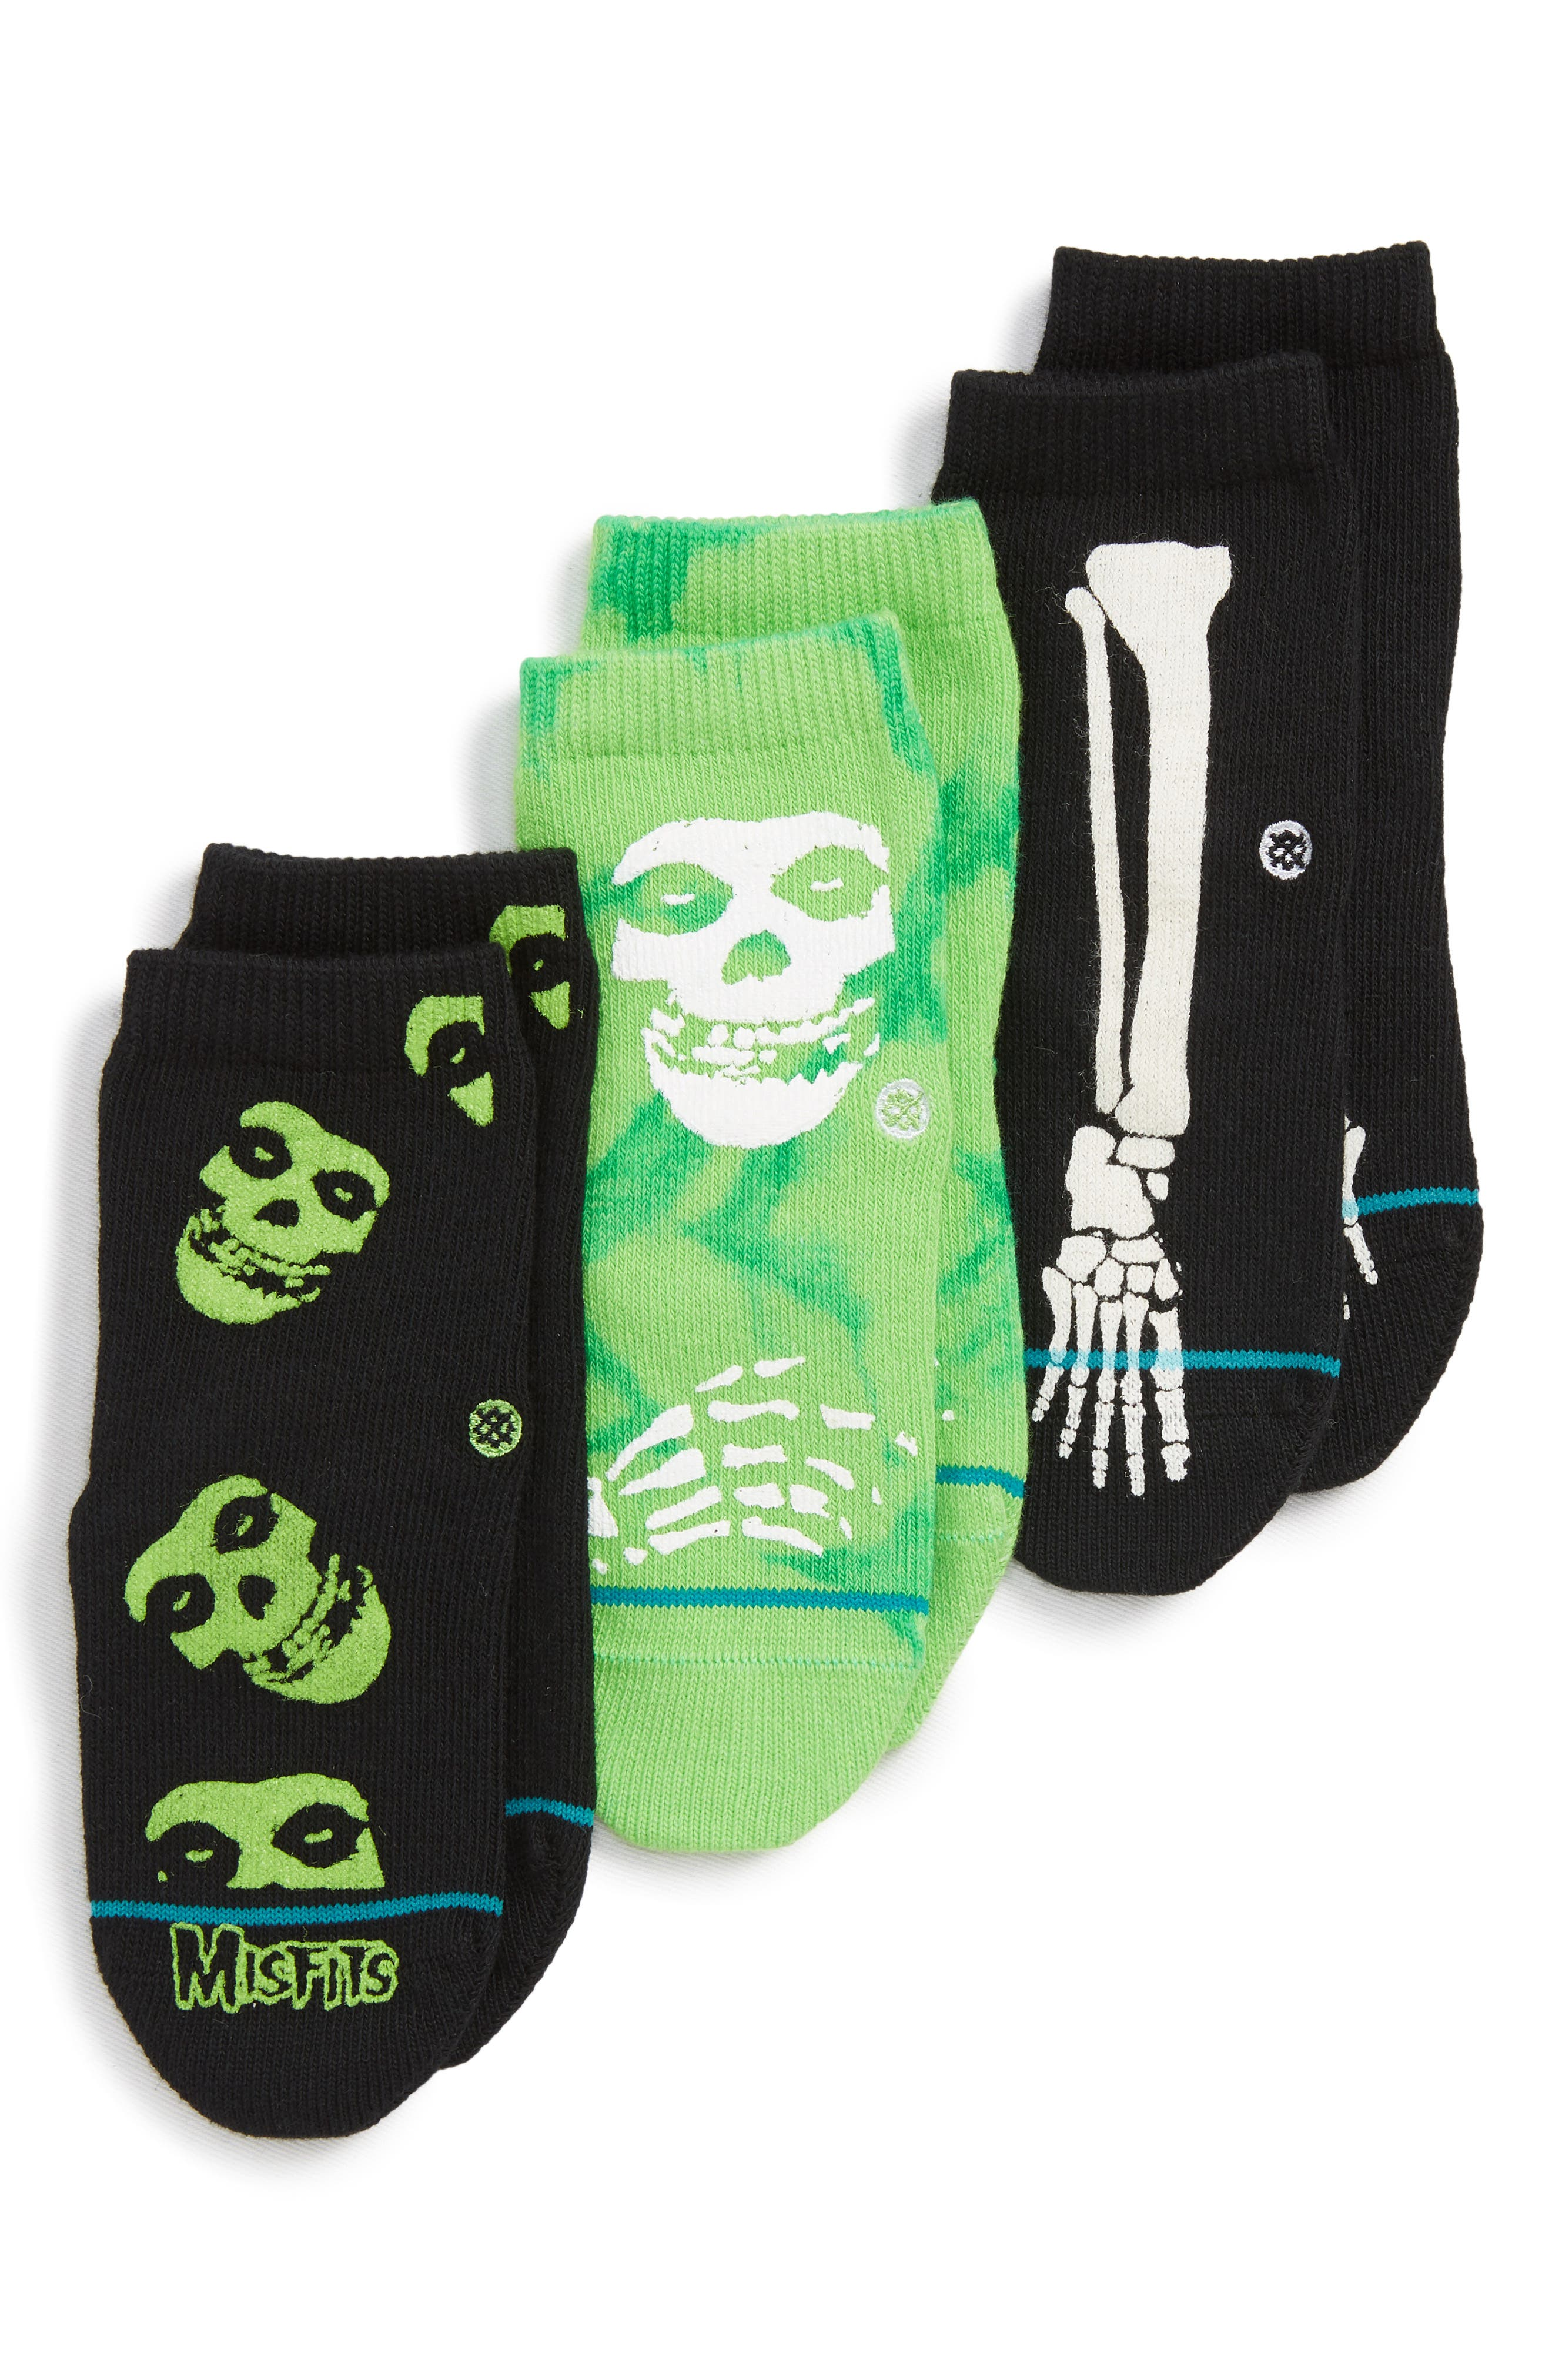 Toddler Boys Stance 3Pack Misfits Ankle Socks Size 12years  Black